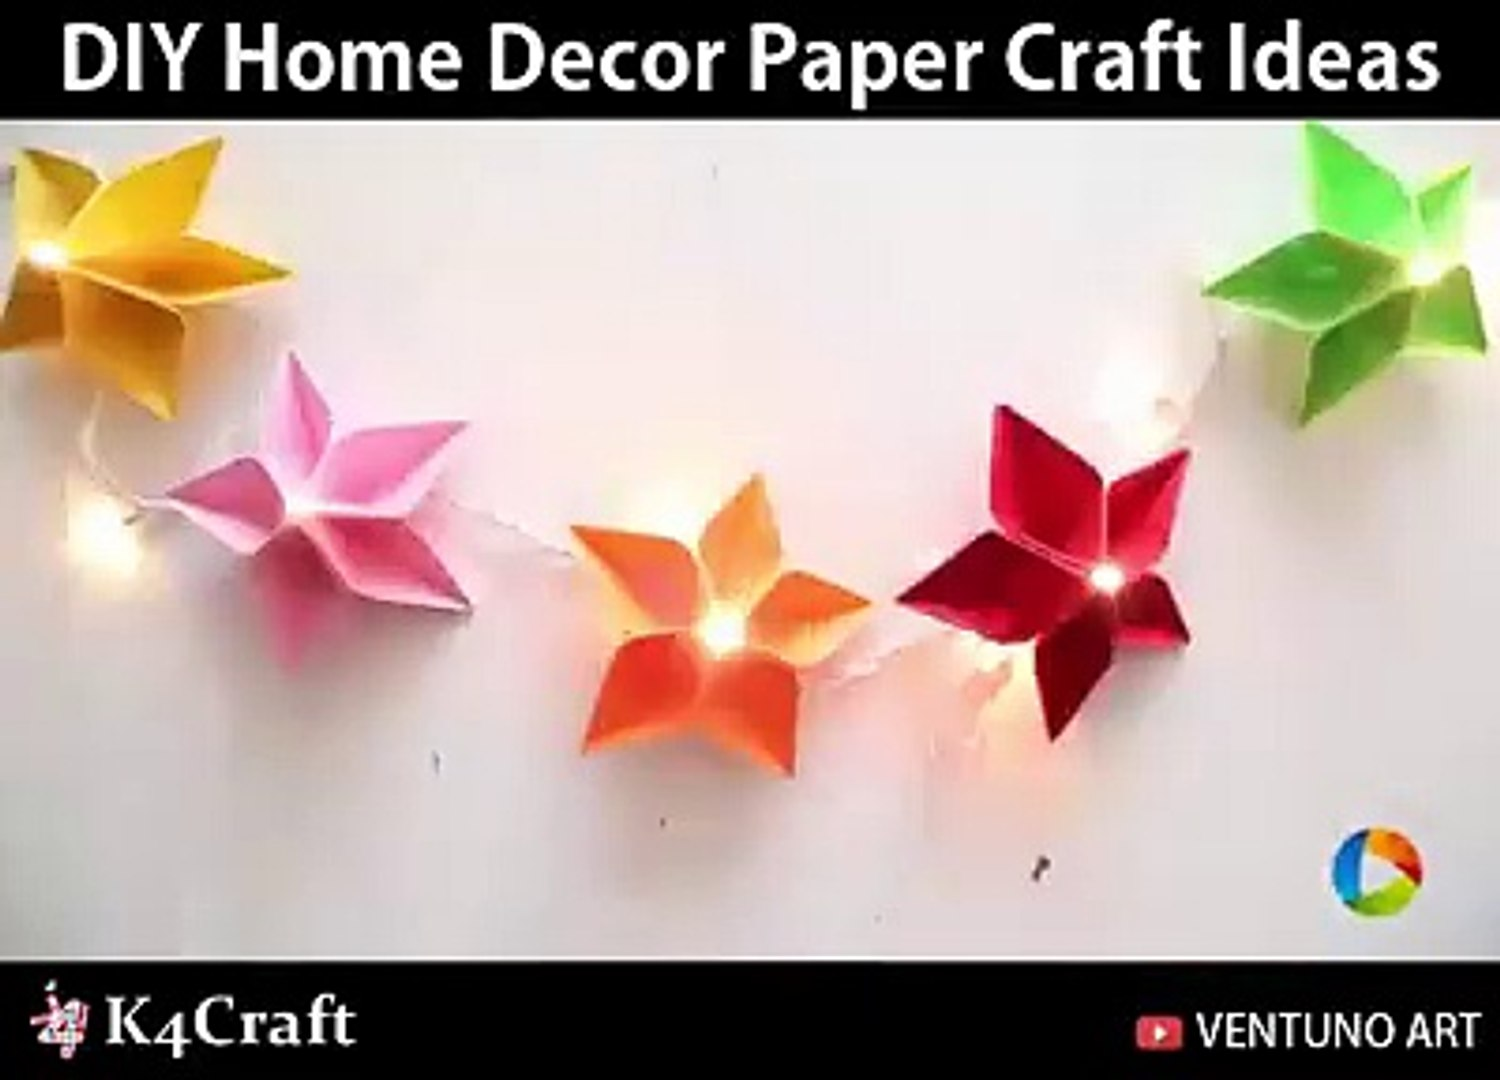 Diy Home Decor Paper Craft Ideas Via Art All The Way Dailymotion Video